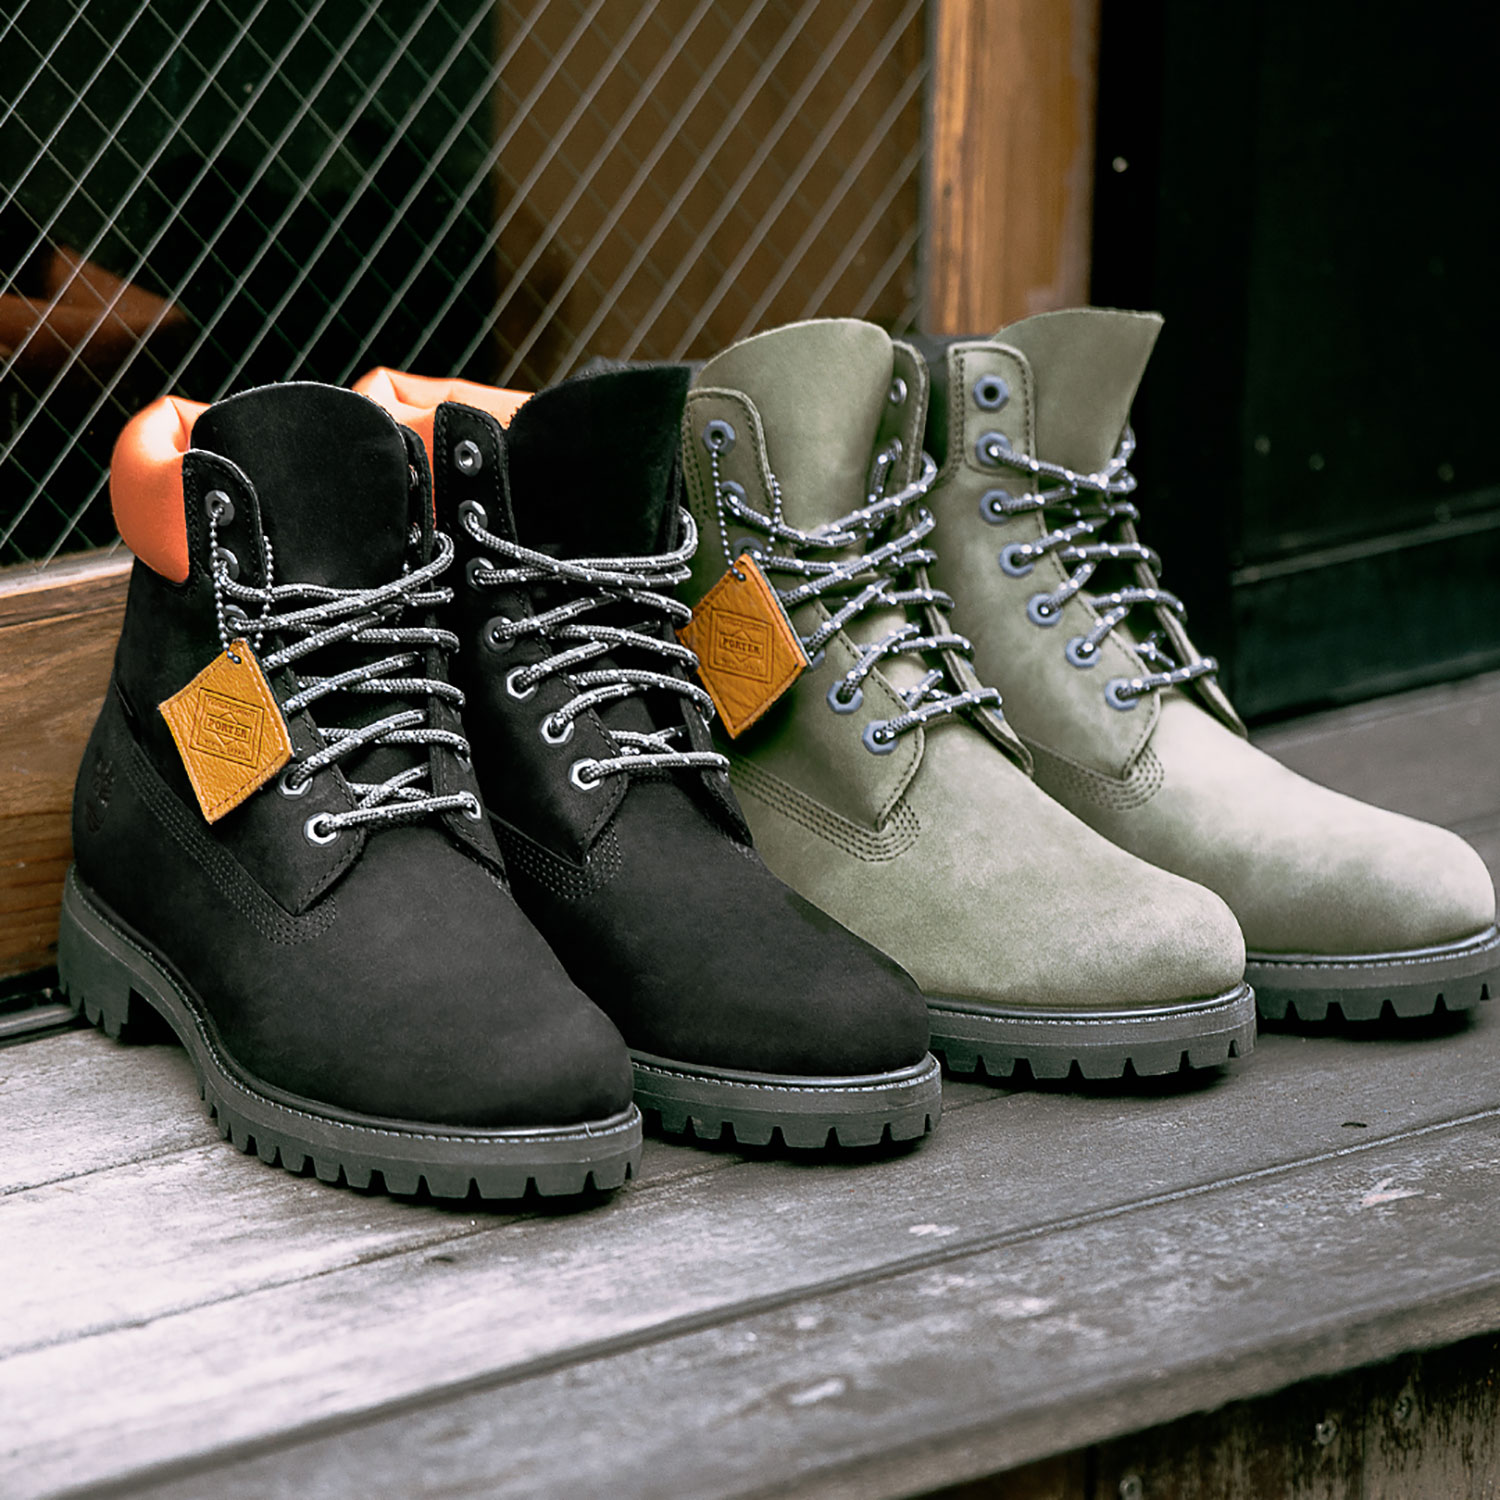 Timberland X Porter Capsule Collection